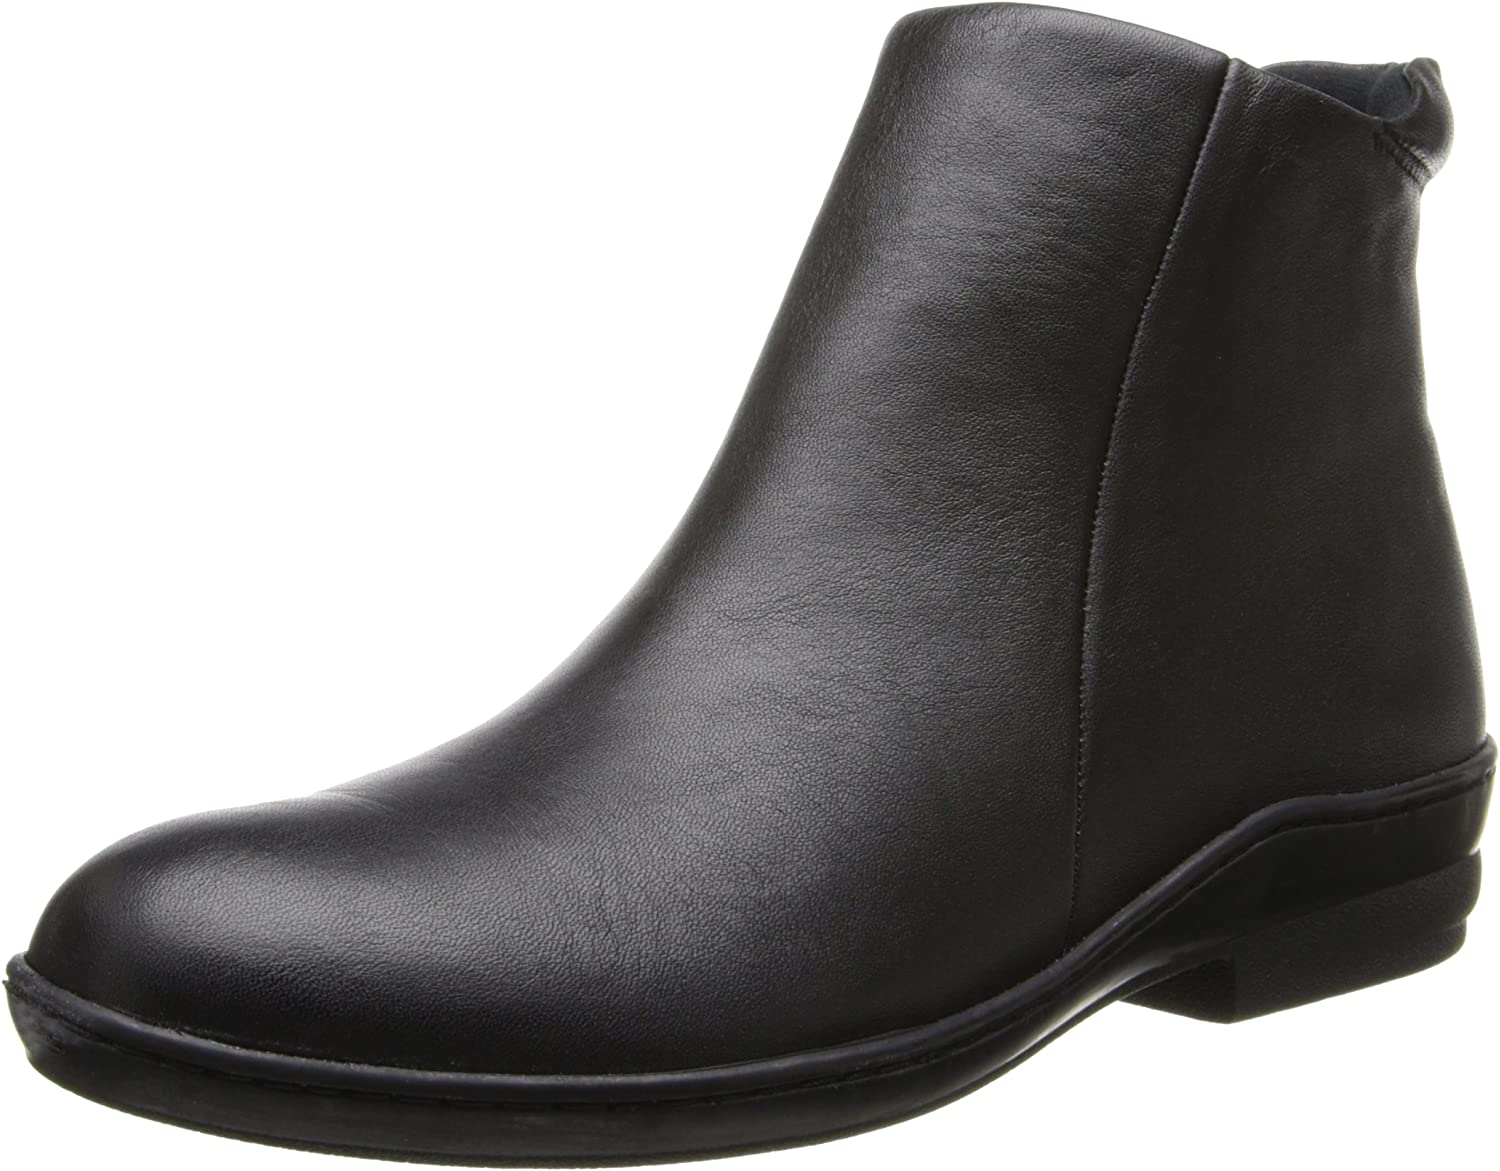 David Tate Women's Simplicity Boot